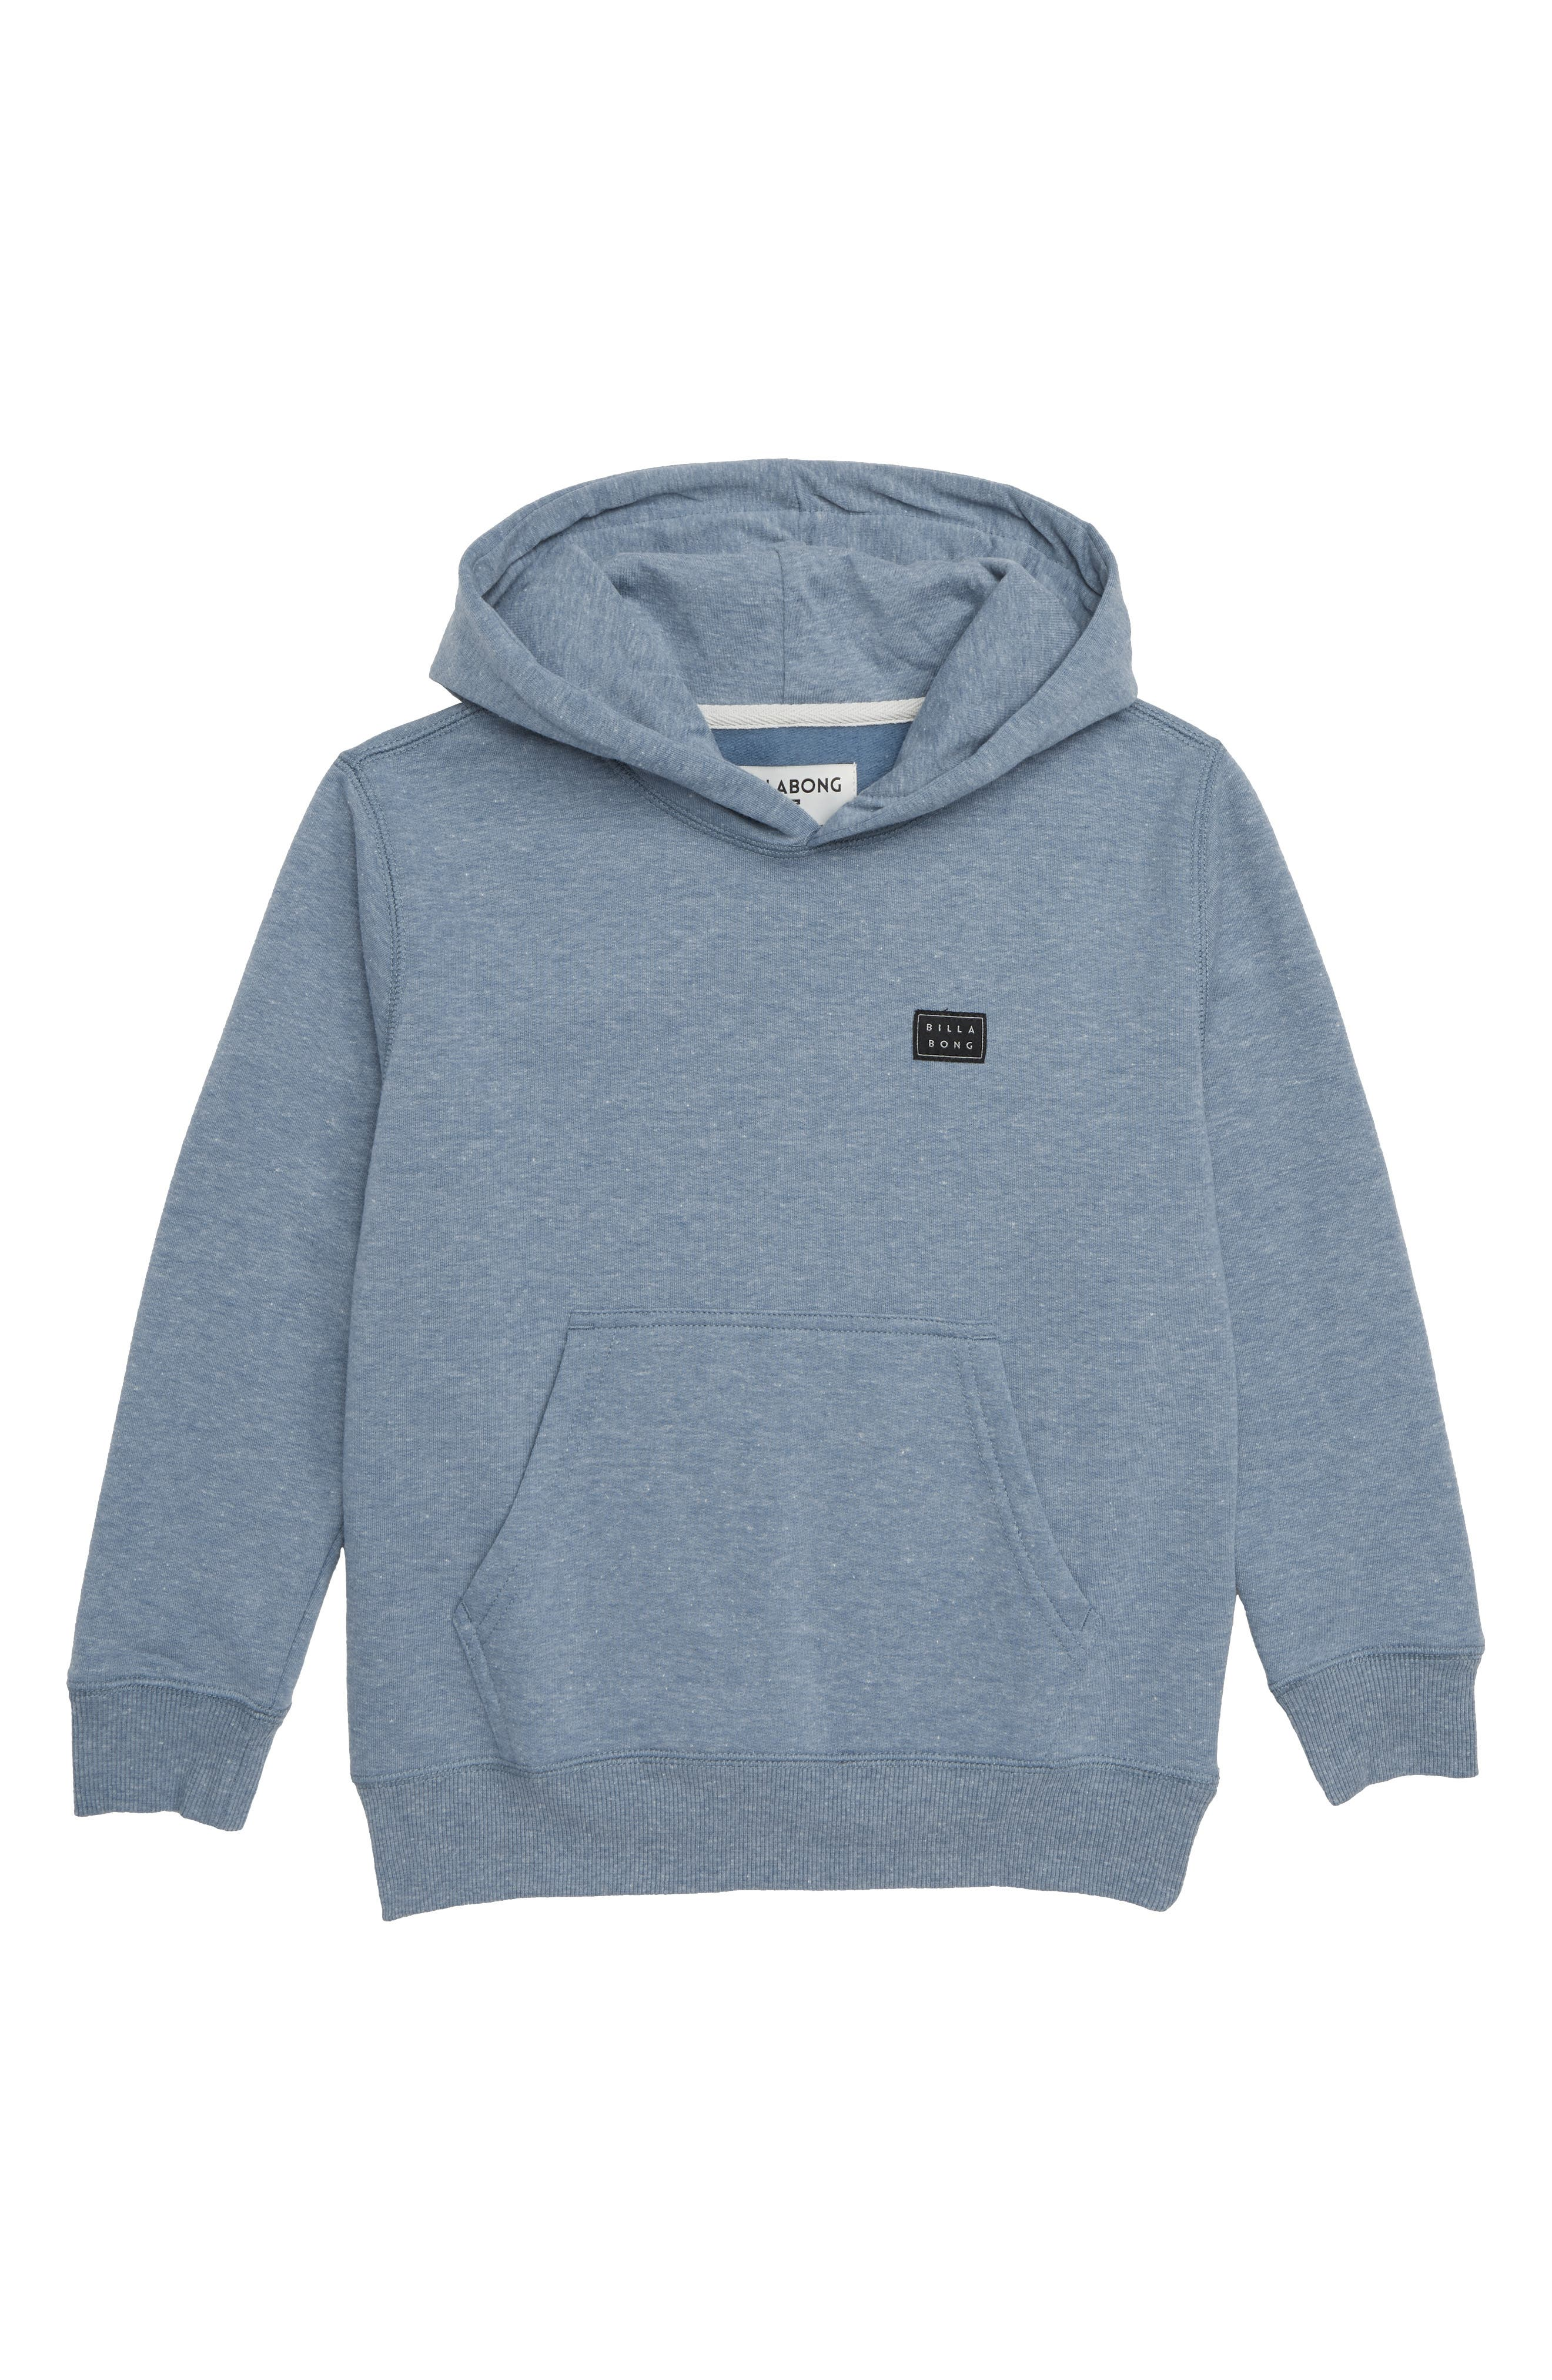 All Day Hoodie,                         Main,                         color, Washed Blue